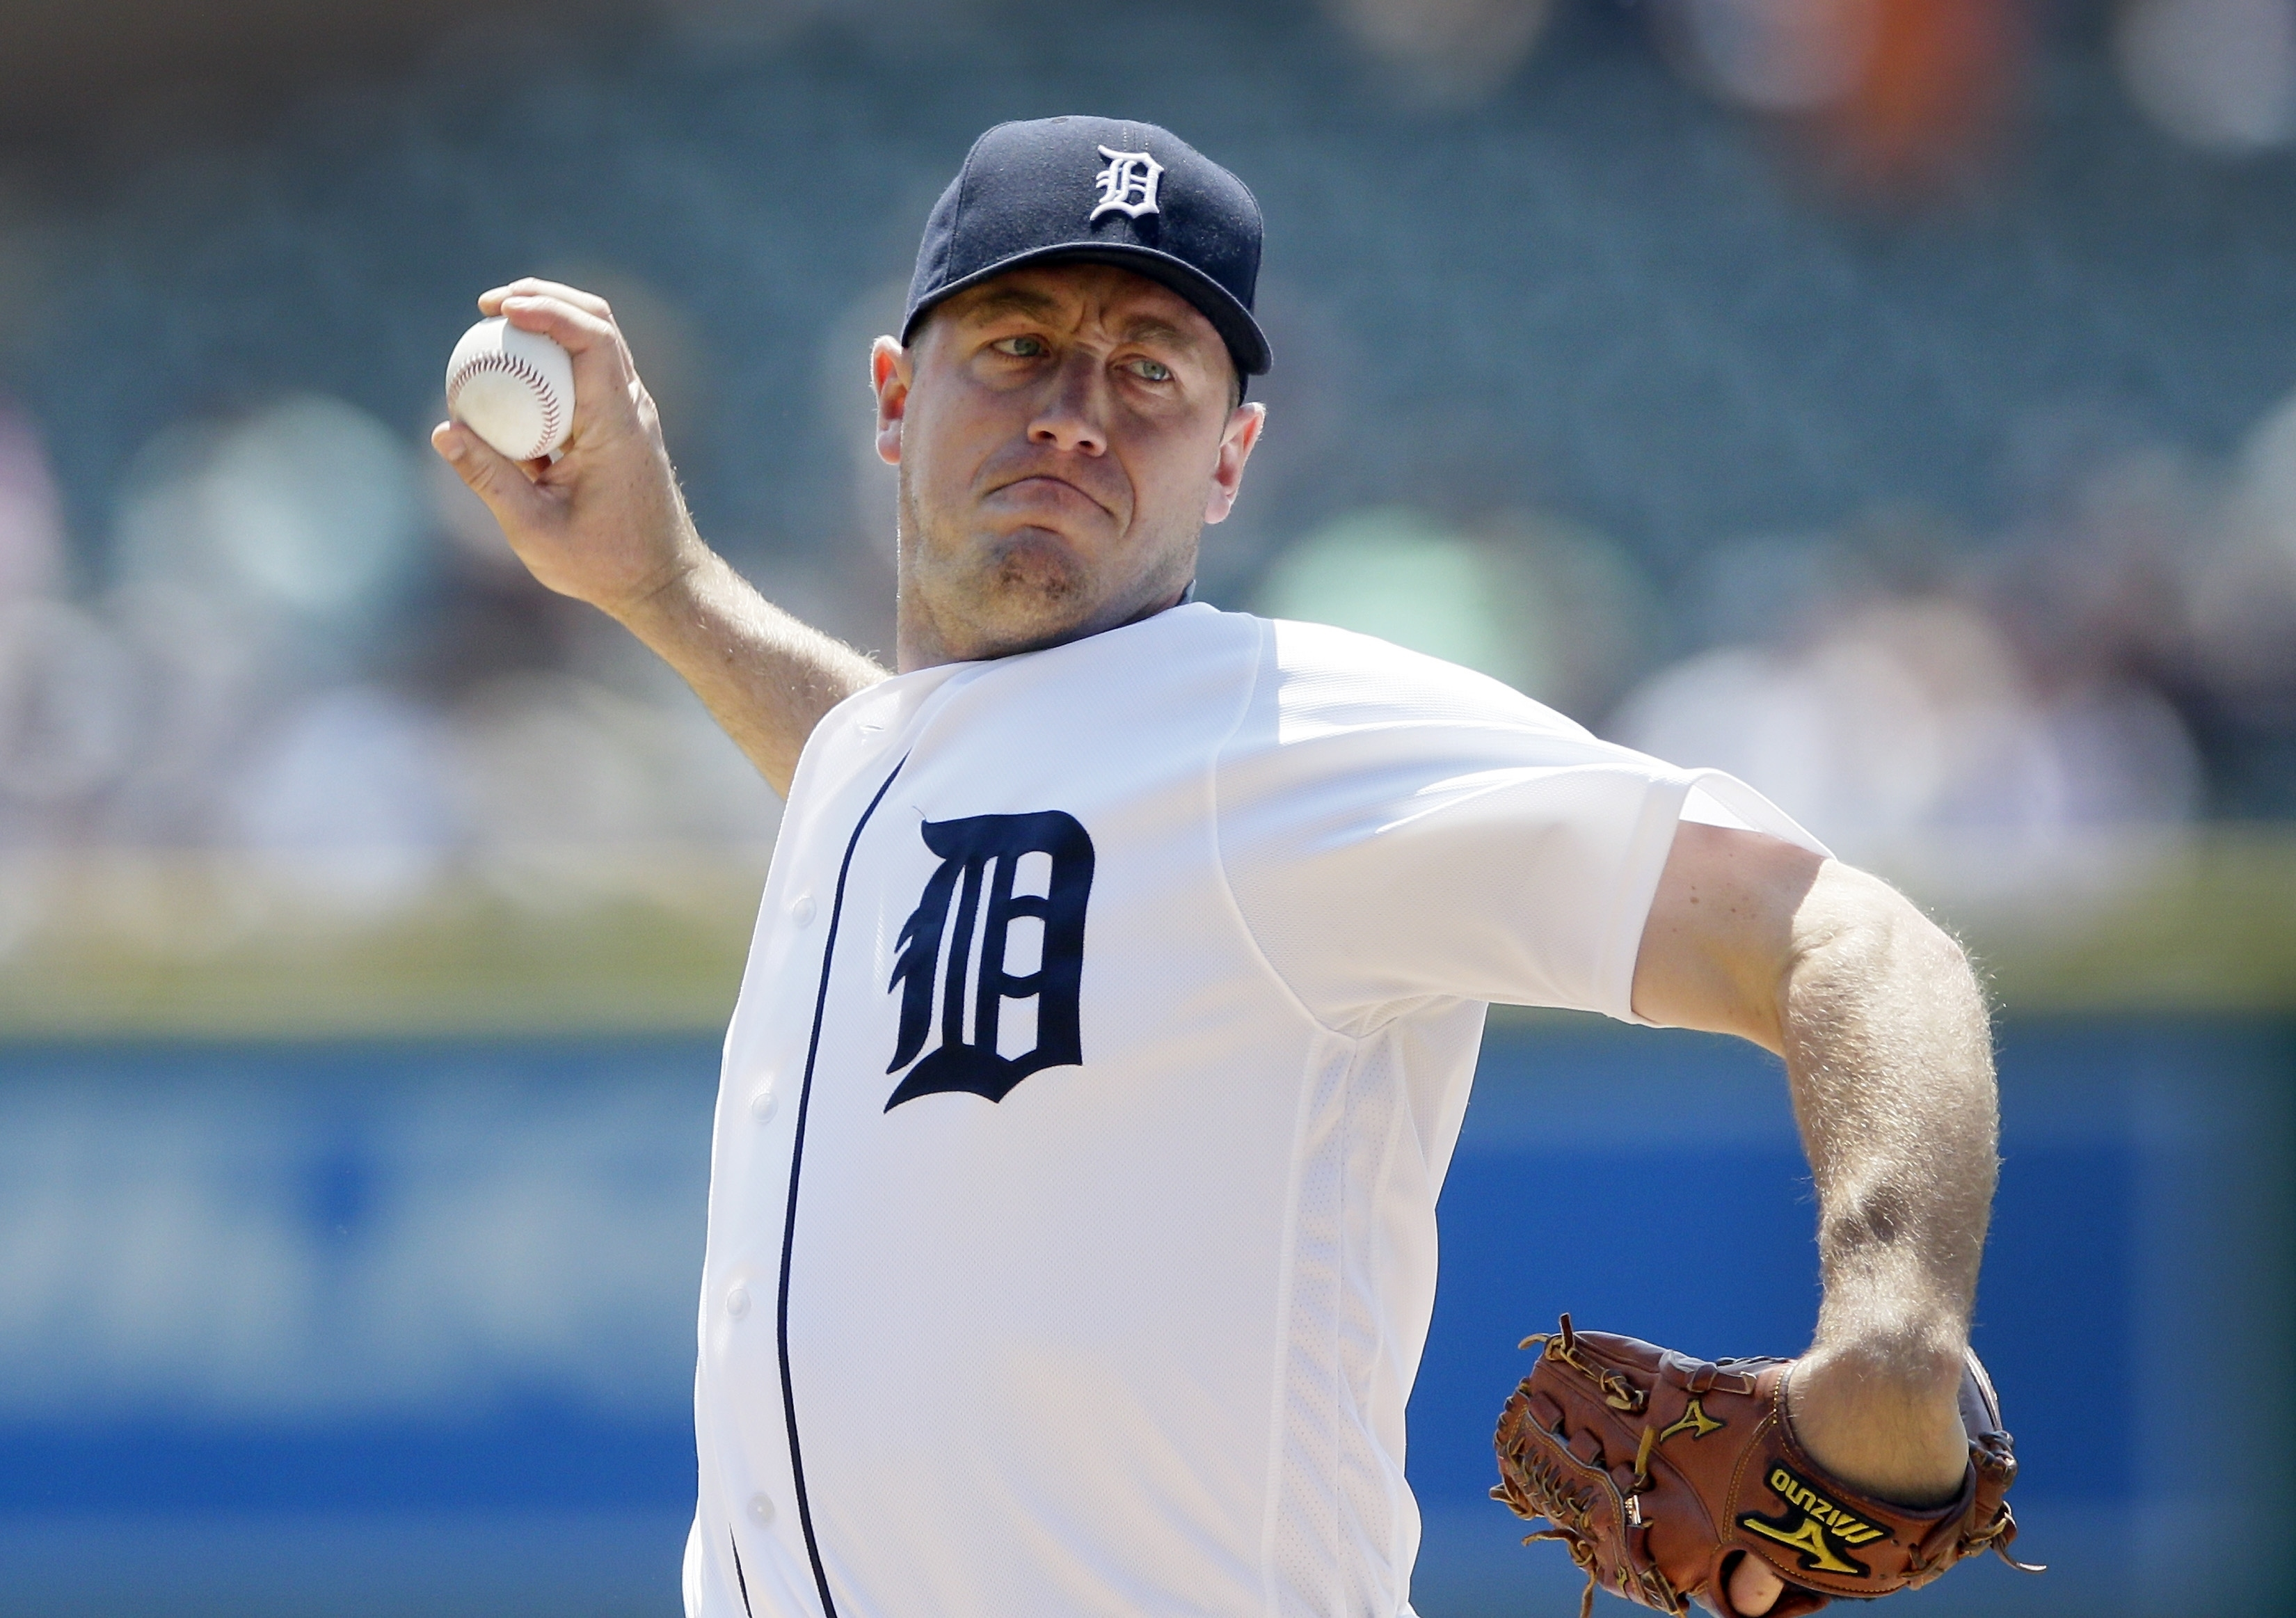 Detroit Tigers starting pitcher Jordan Zimmermann throws during the first inning of a baseball game against the Tampa Bay Rays, Sunday, May 22, 2016, in Detroit. (AP Photo/Carlos Osorio)